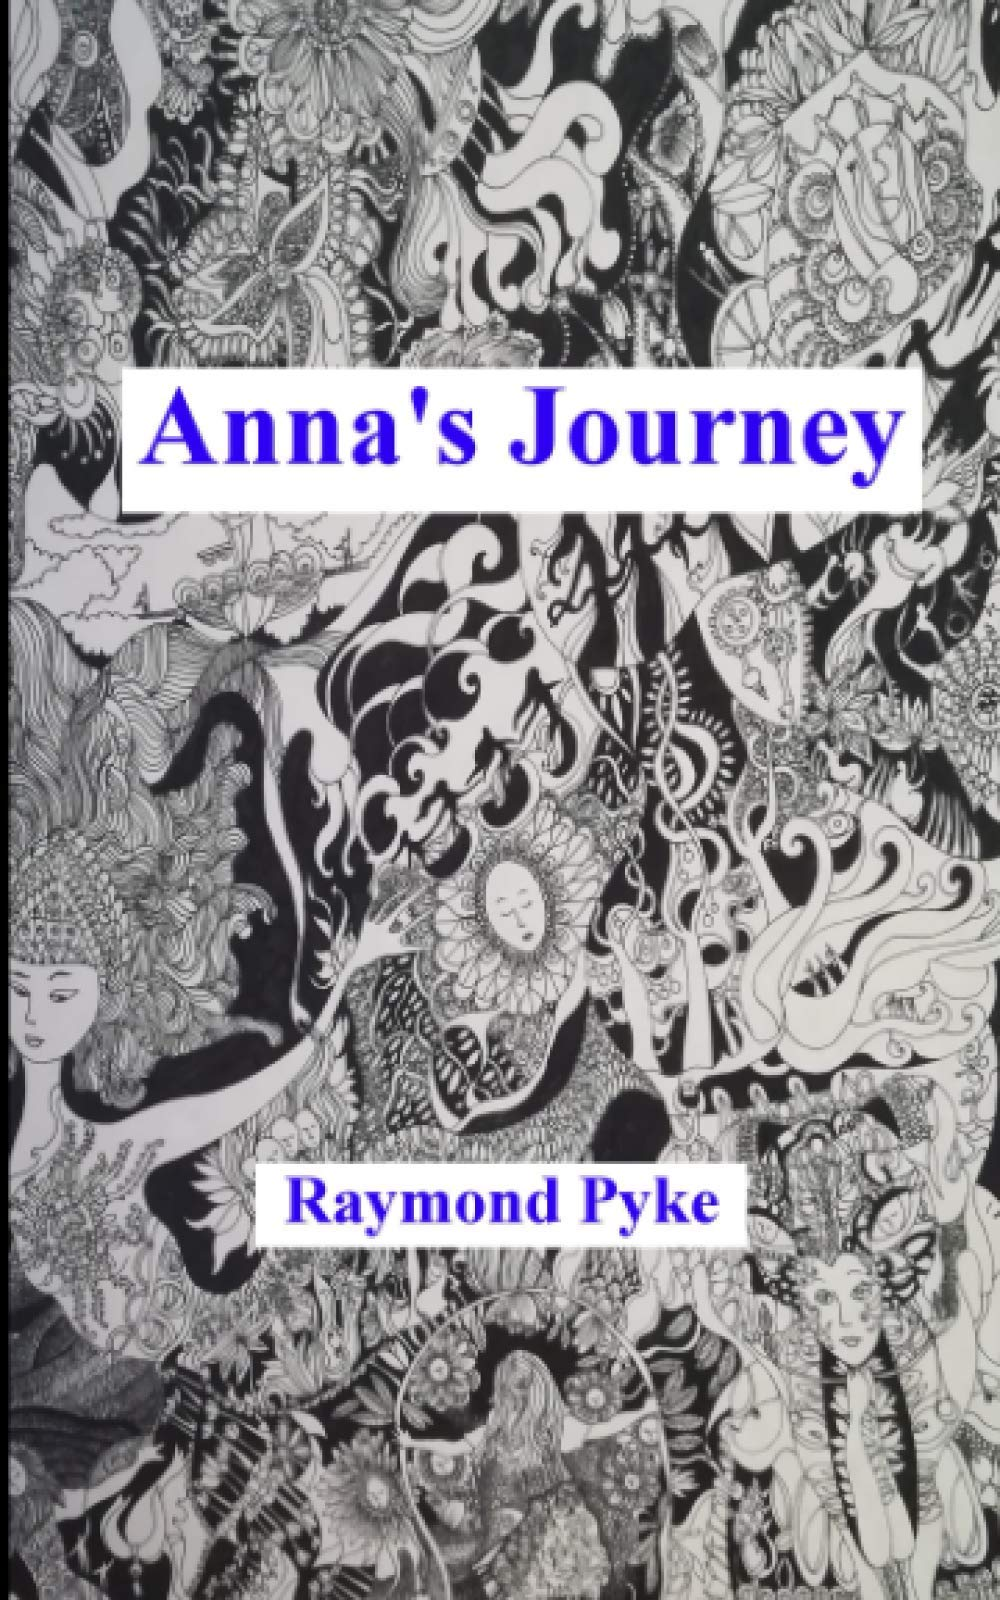 Anna's Journey: A Book Review